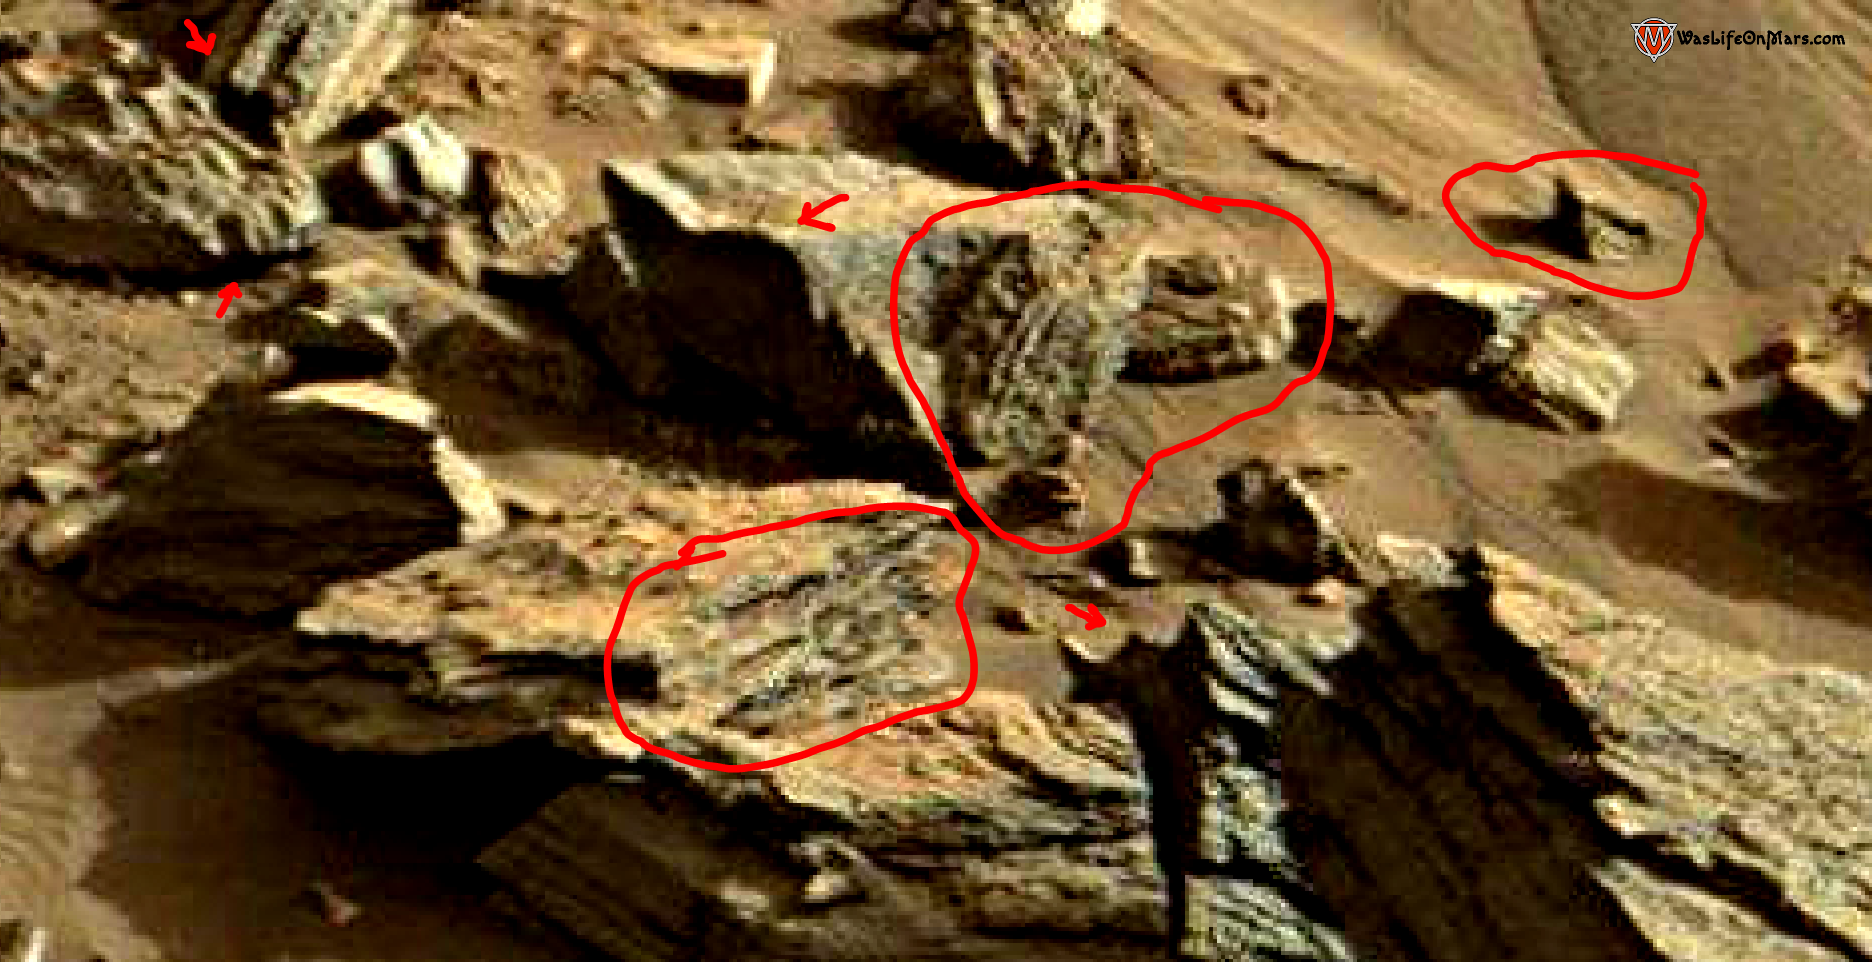 mars sol 1419 anomaly artifacts 11a1 was life on mars